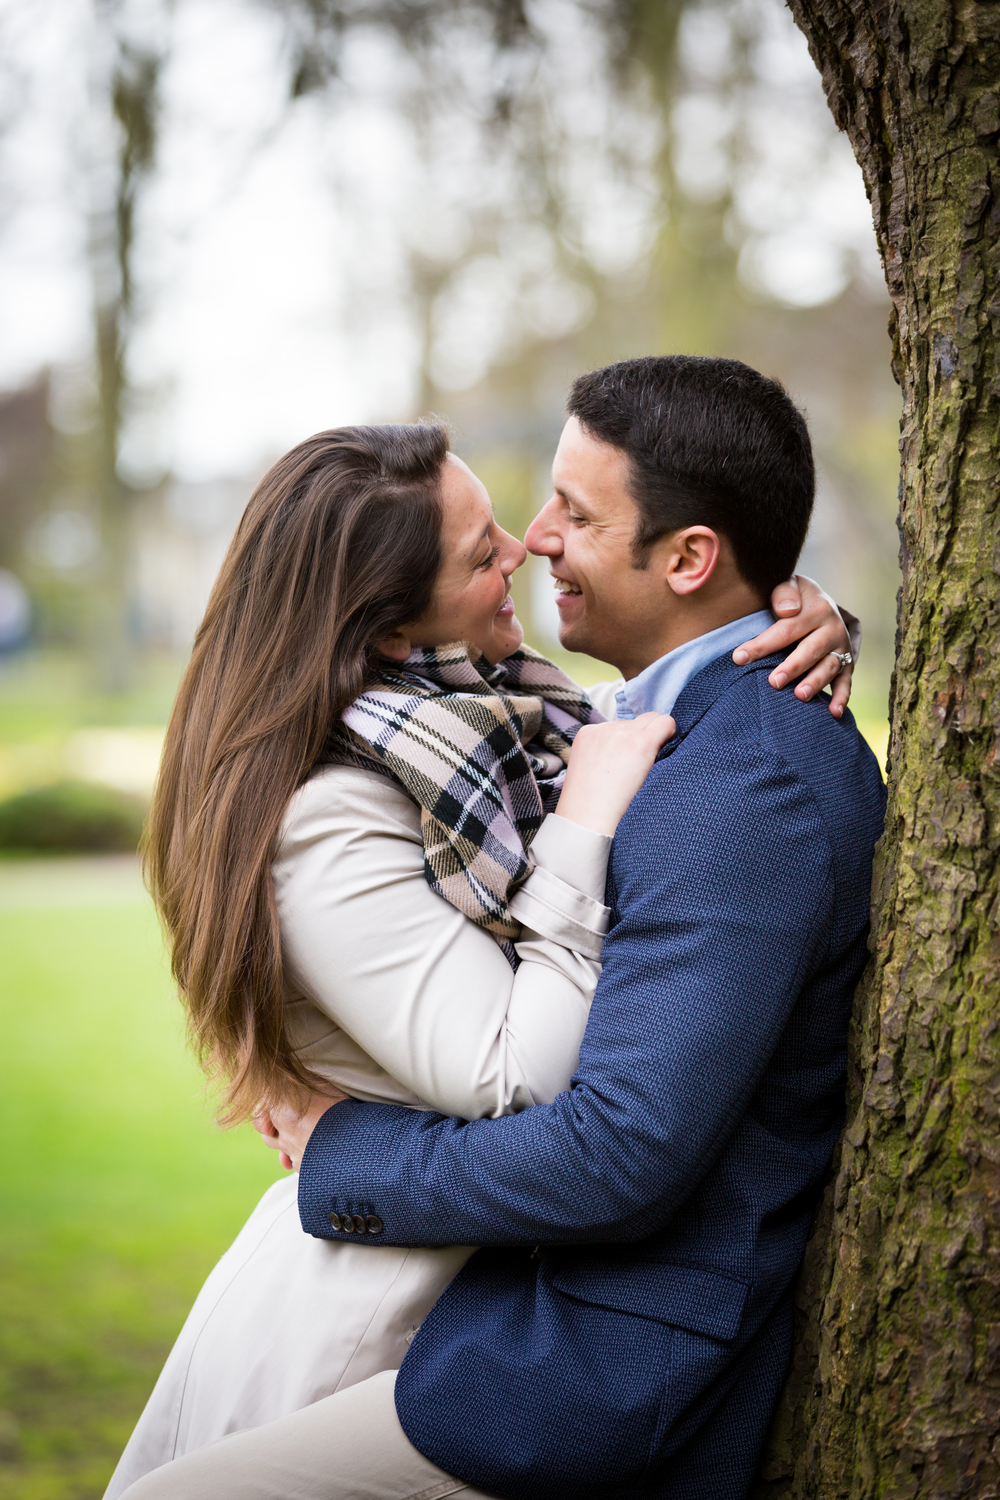 Image from Rudy & Becca Cruz' Engagement Session in Cambridge Christ's Pieces Park